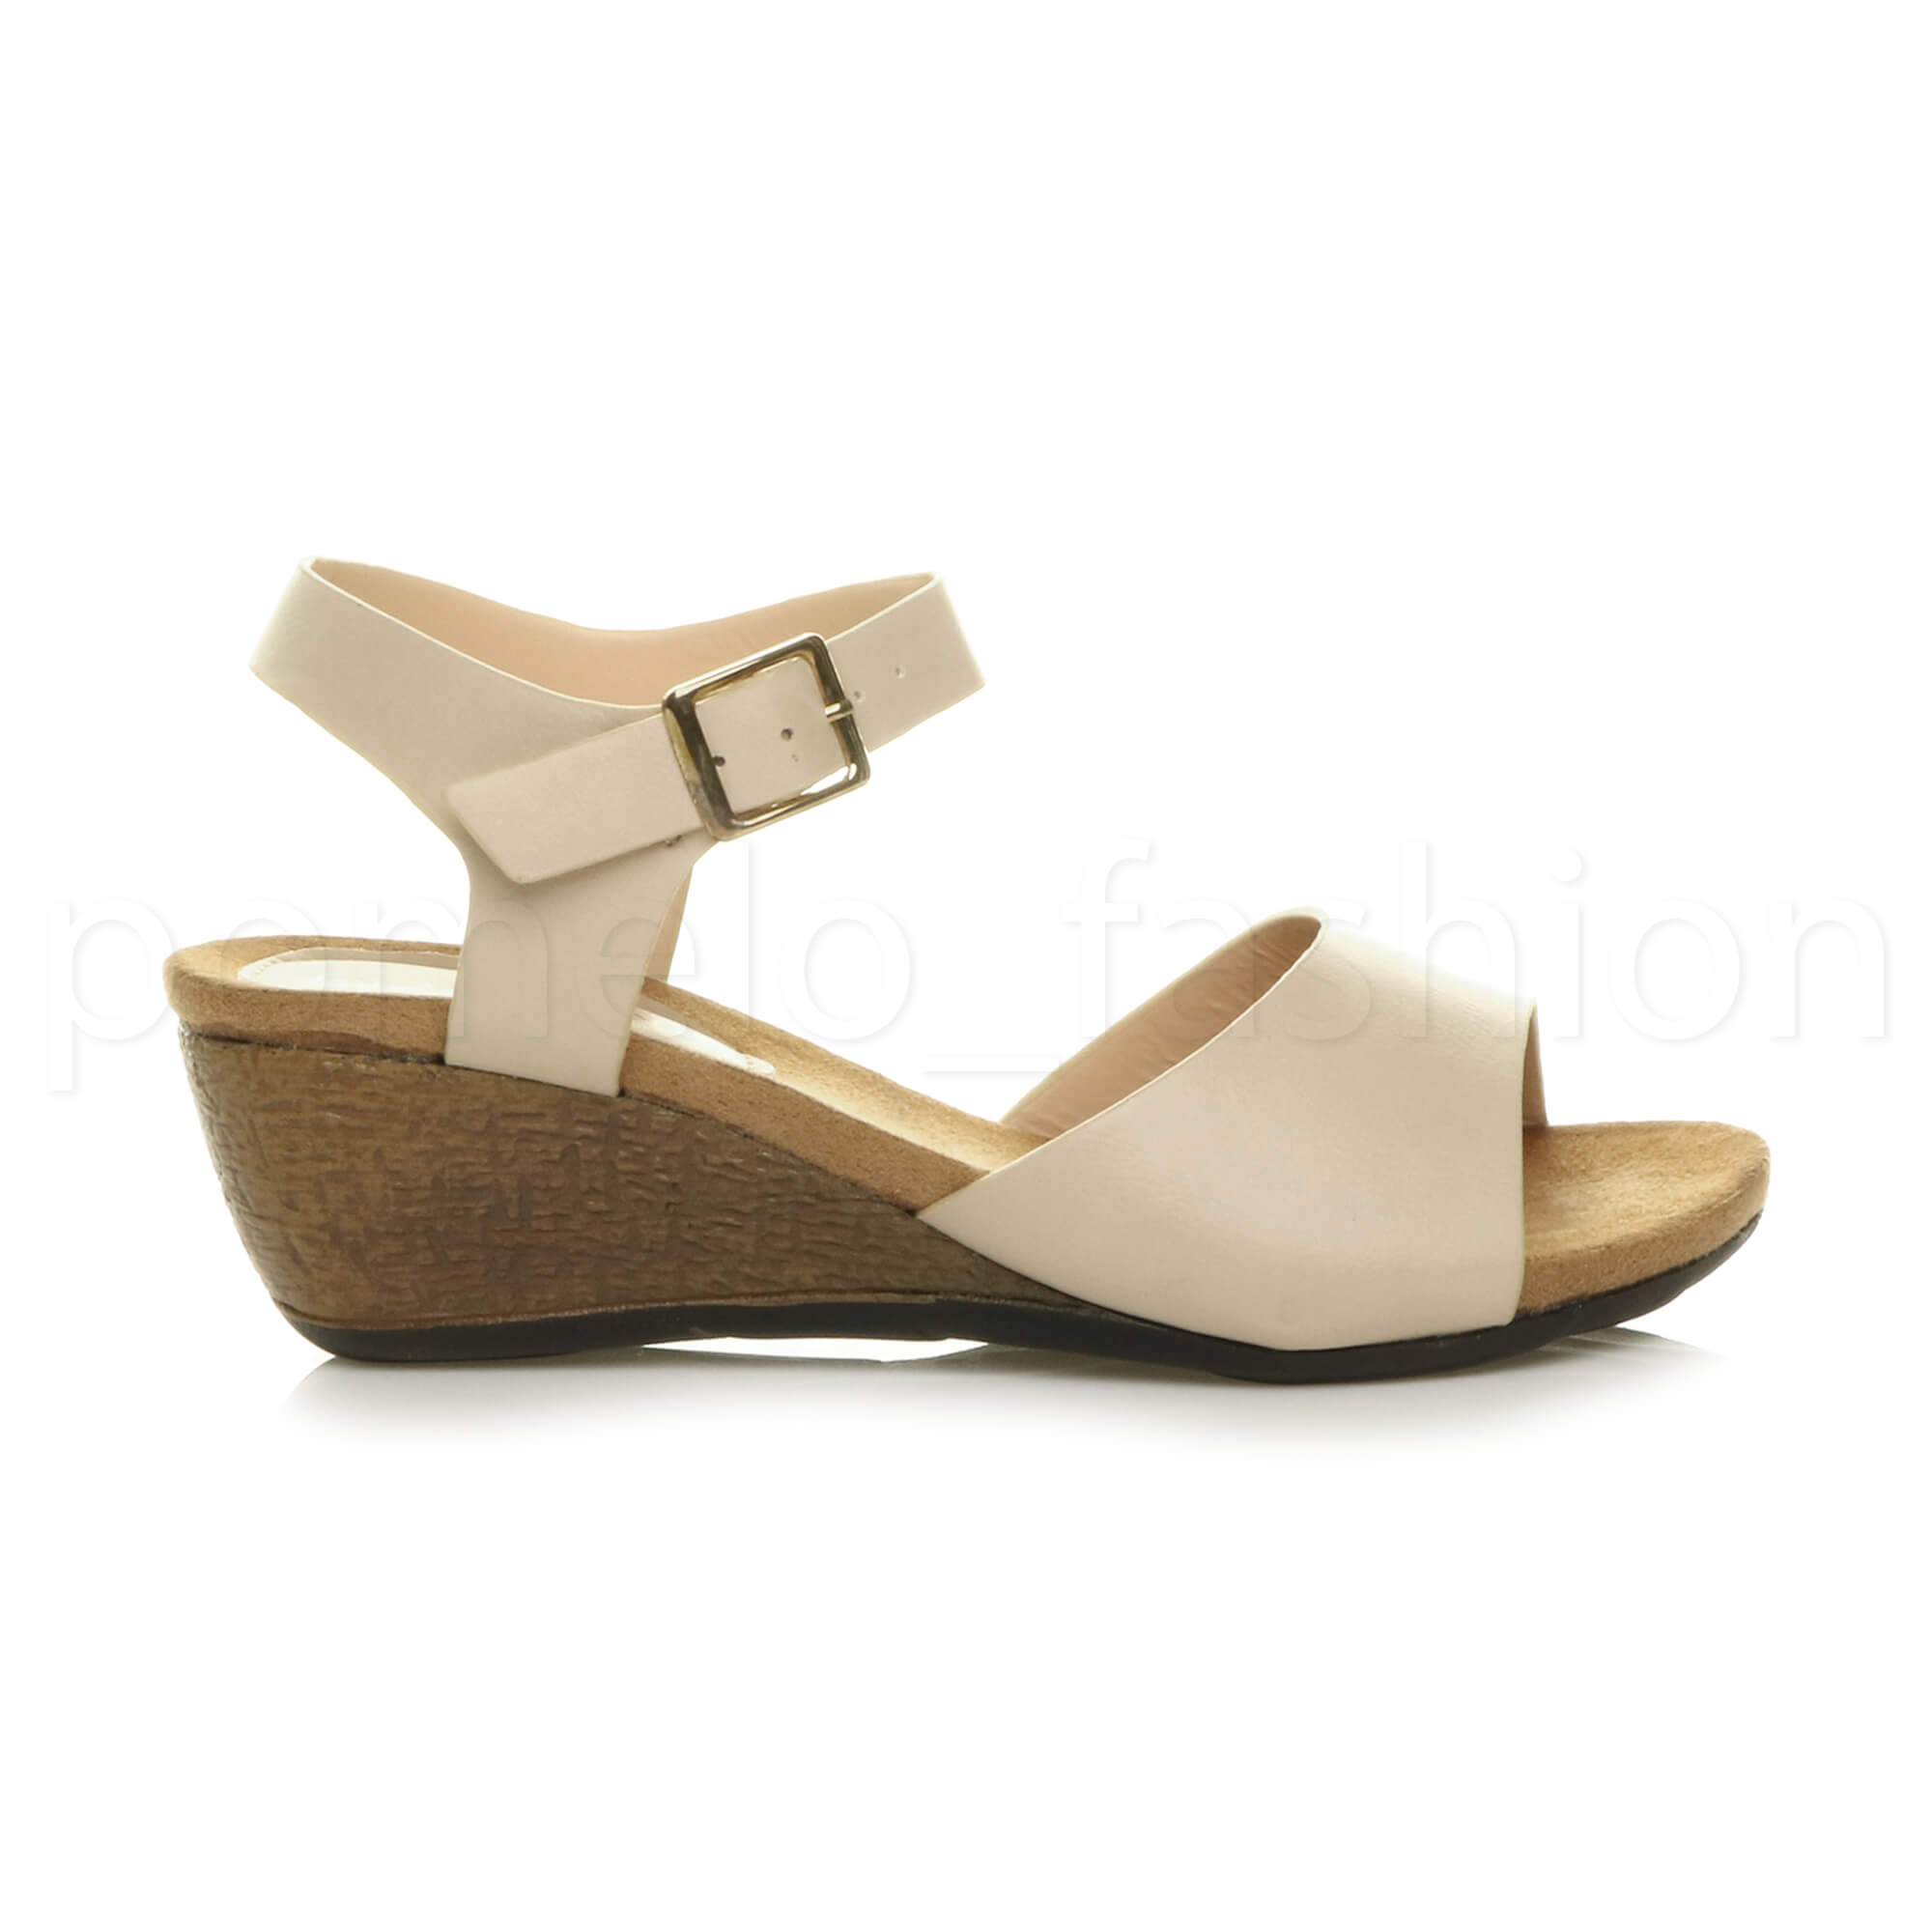 WOMENS LADIES LOW MID WEDGE HEEL ANKLE STRAP WORK SUMMER EVENING SANDALS SIZE